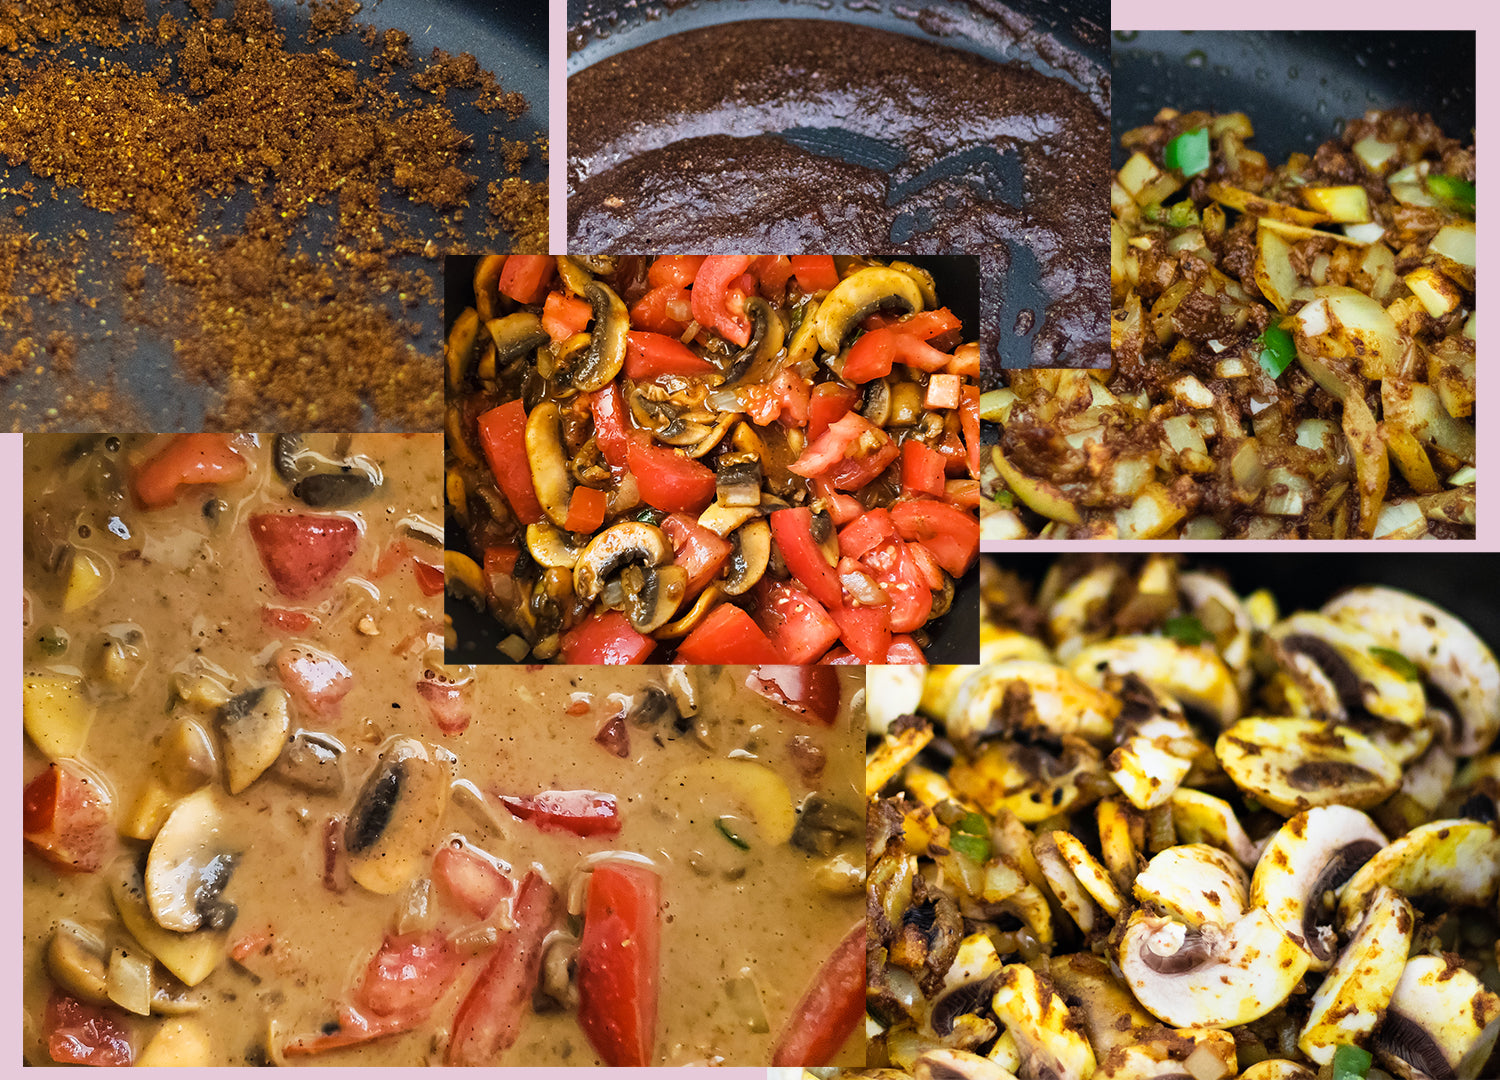 6 of the steps to making homemade mushroom masala. First brown the spices, second add ghee and maple syrup, third add onion, pepper, garlic, and ginger, fourth add mushrooms, fifth add tomatoes, finally add coconut cream and bring to a simmer